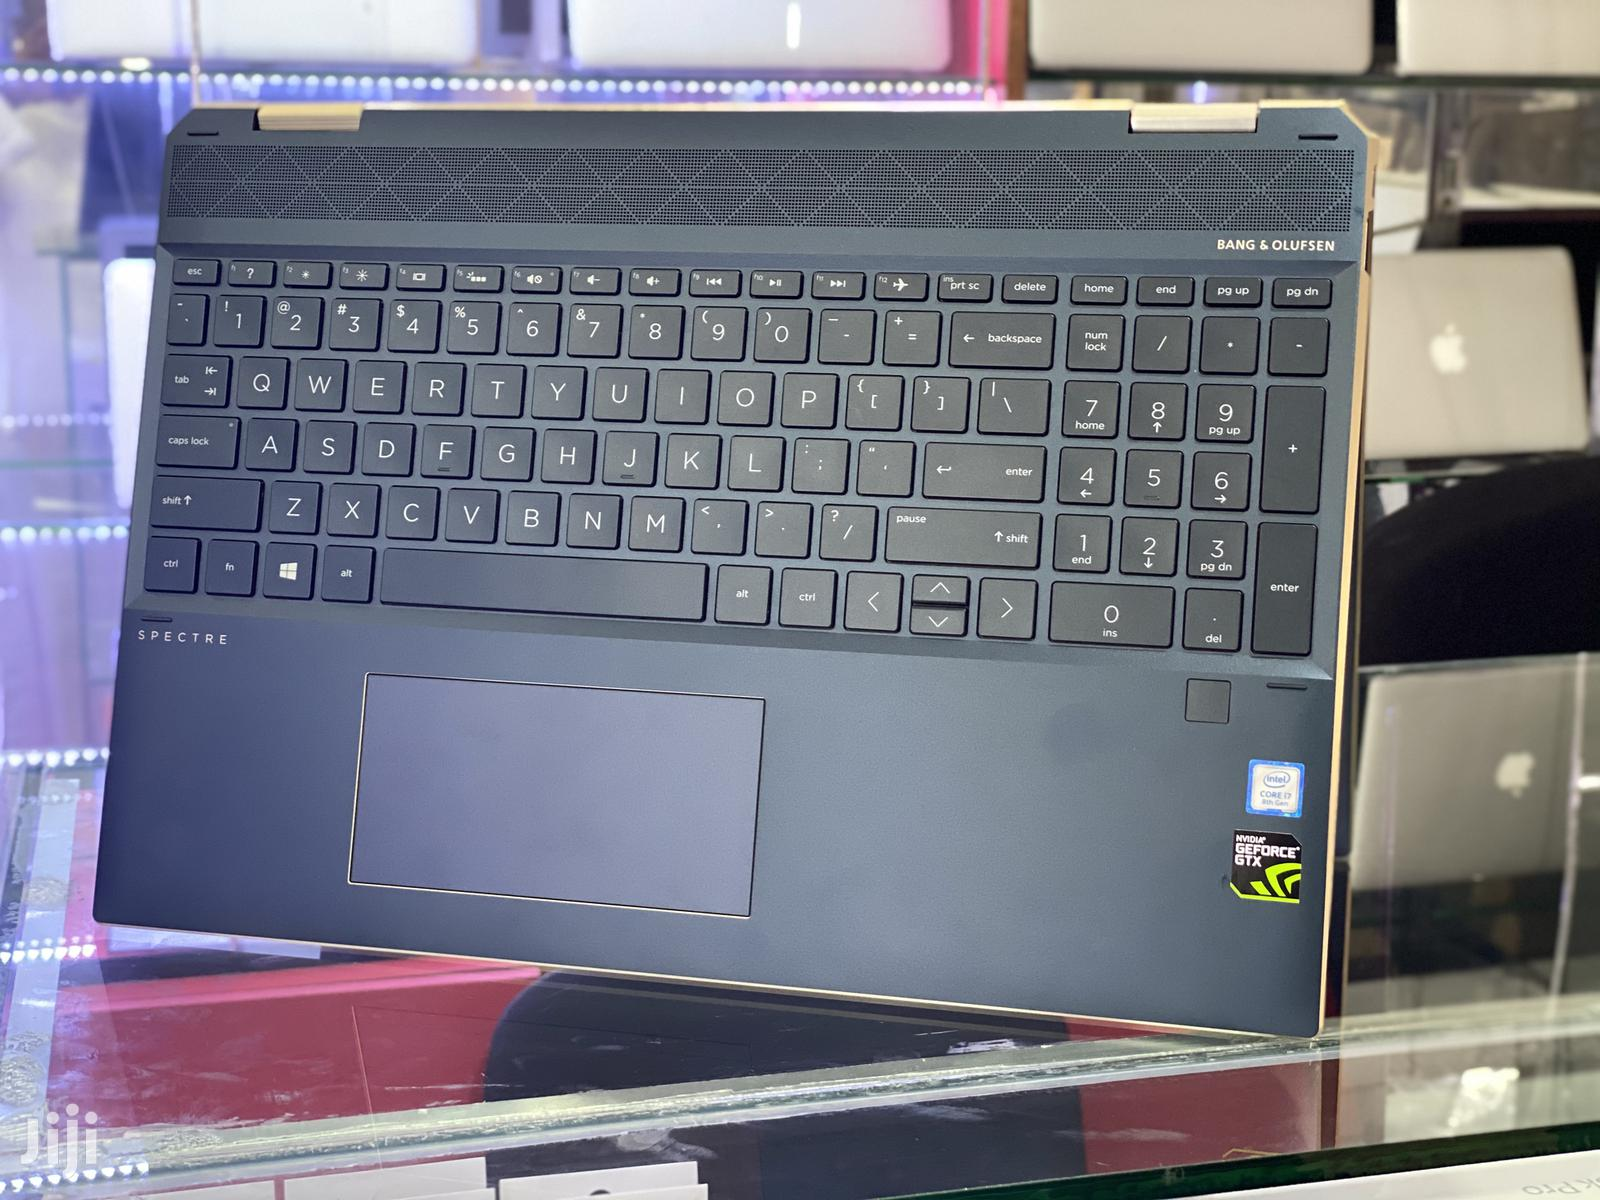 Archive: New Laptop HP Spectre Xt 15 16GB Intel Core i7 SSHD (Hybrid) 512GB